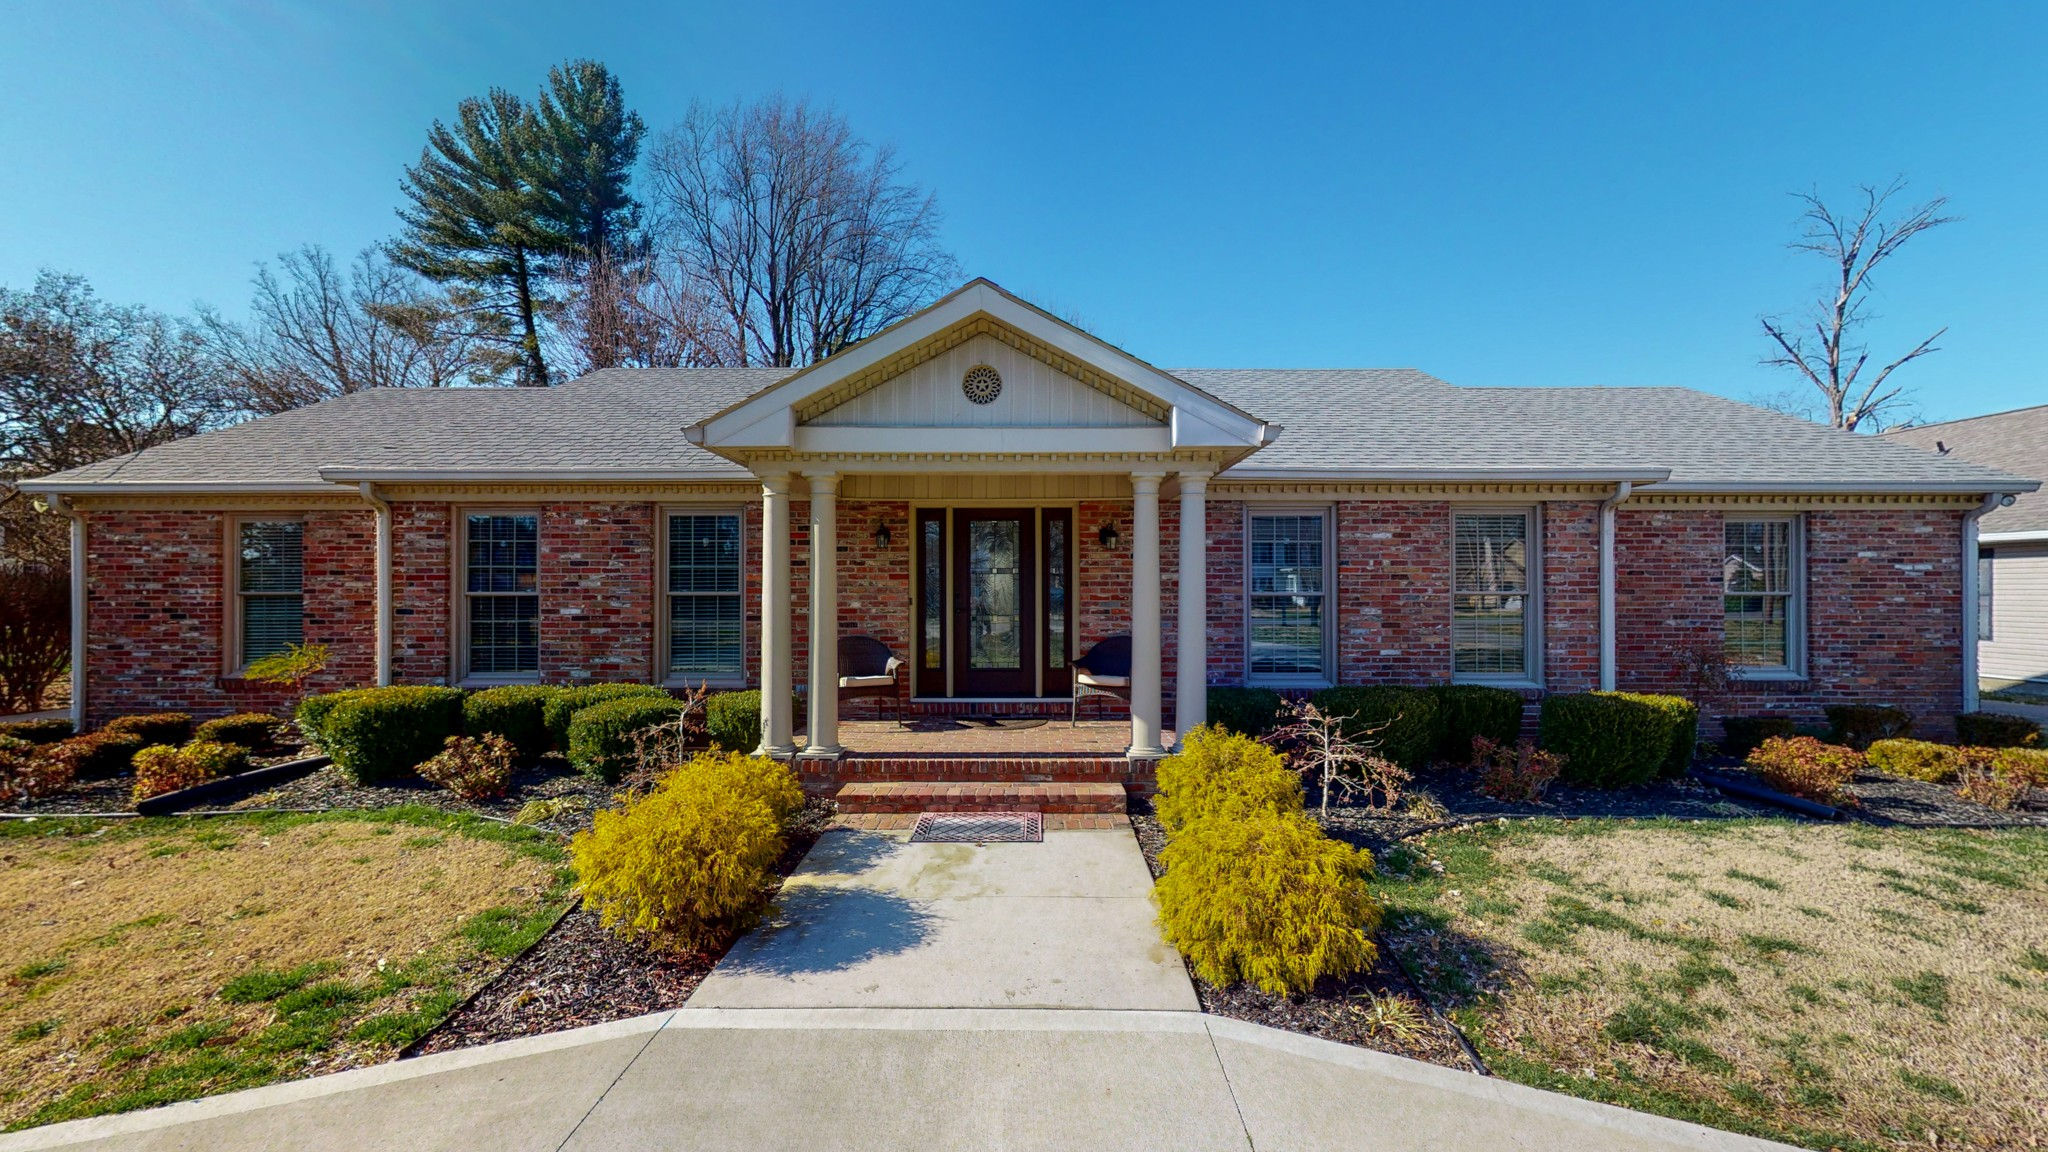 2523 Cox Mill Rd, Hopkinsville, KY 42240 - Hopkinsville, KY real estate listing